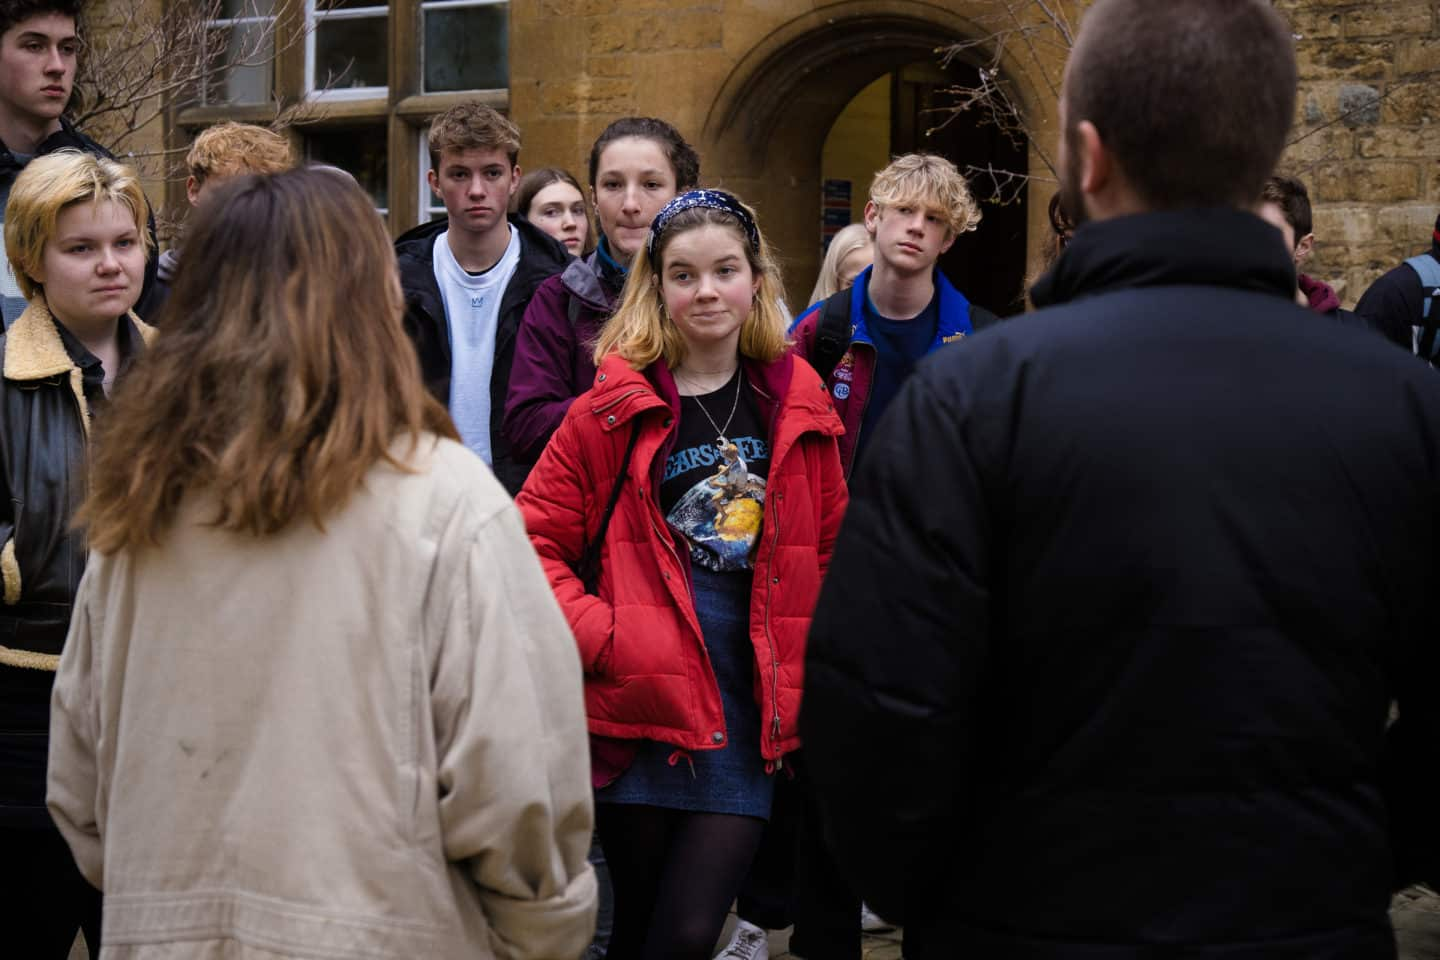 Lincoln students give school group a tour of Lincoln College